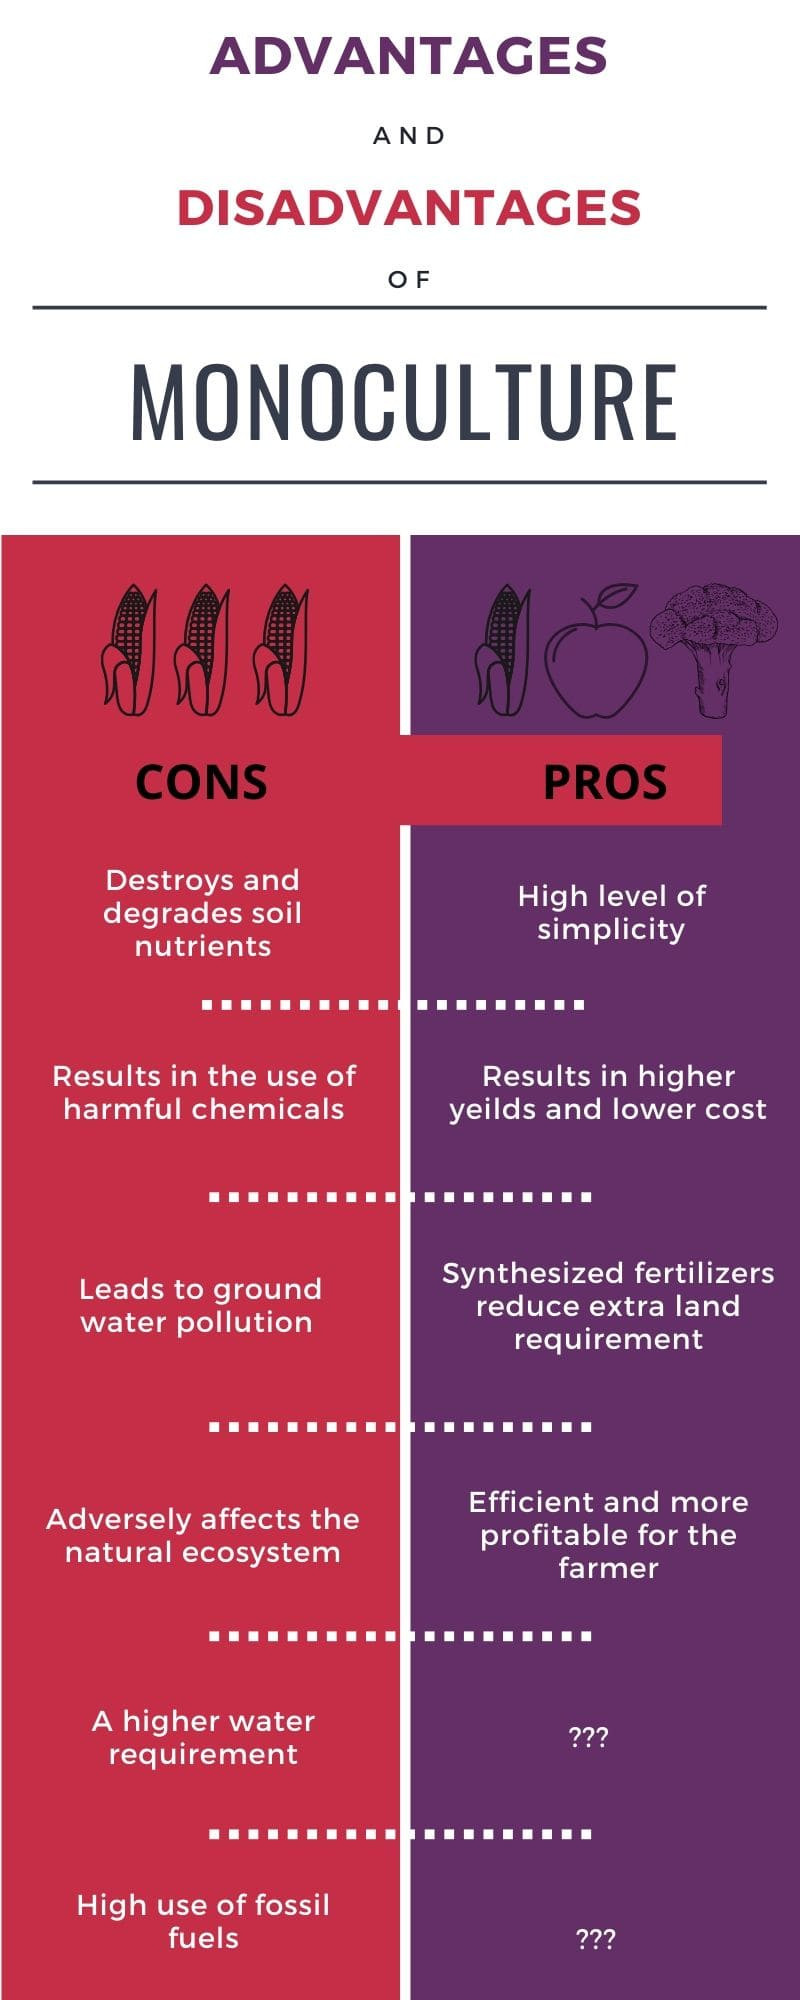 Pros and cons of mono-culture infographic